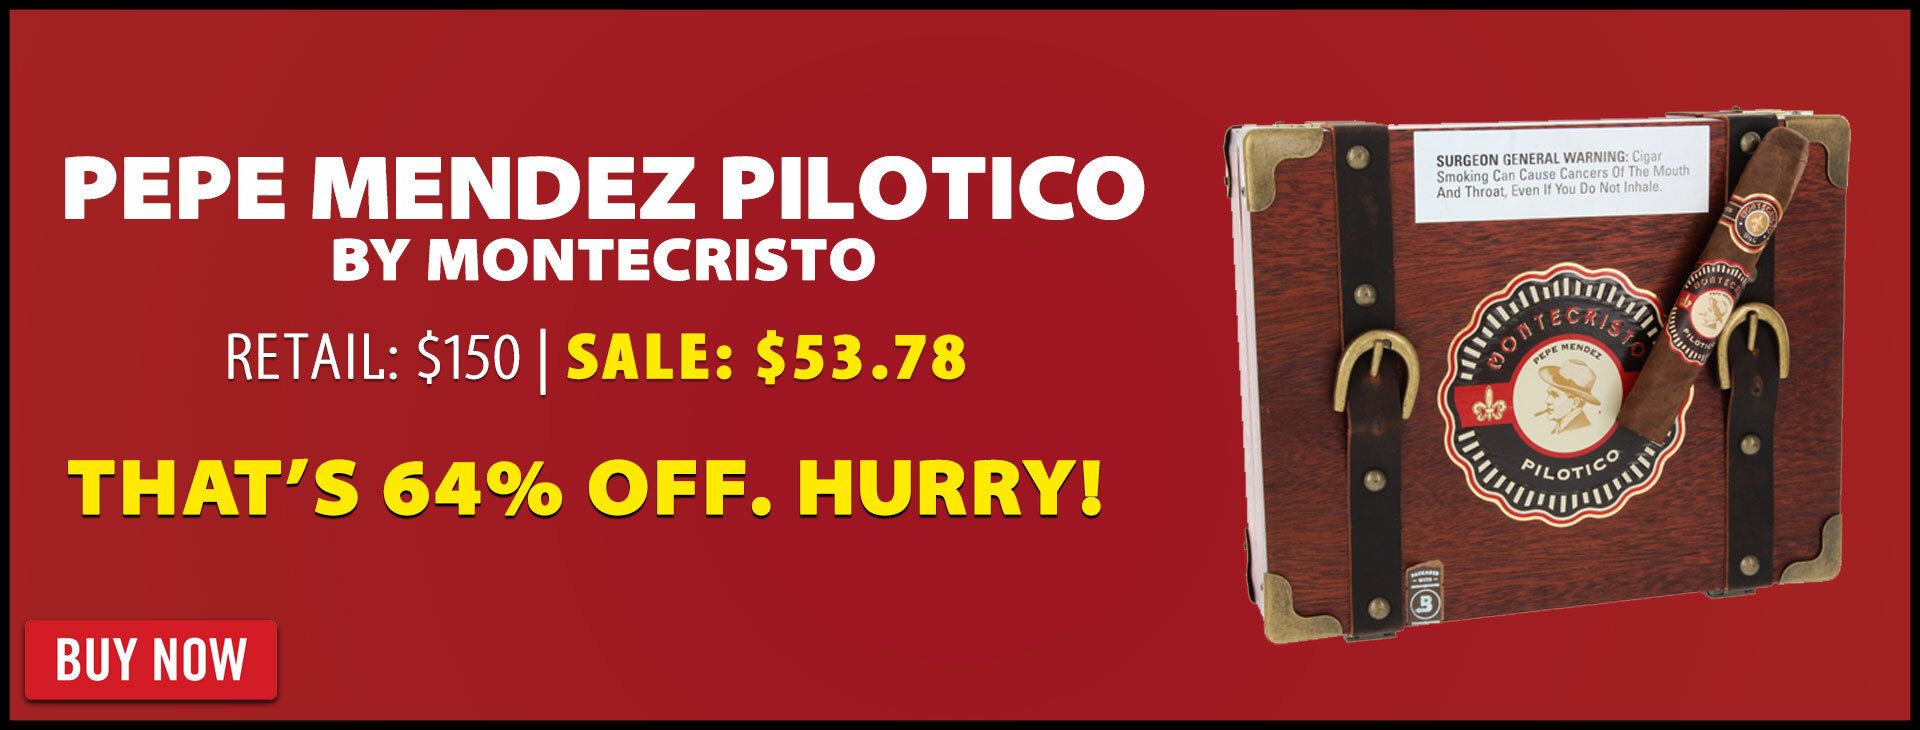 64% OFF MC Pilotico Pepe Mendez Liquidation!